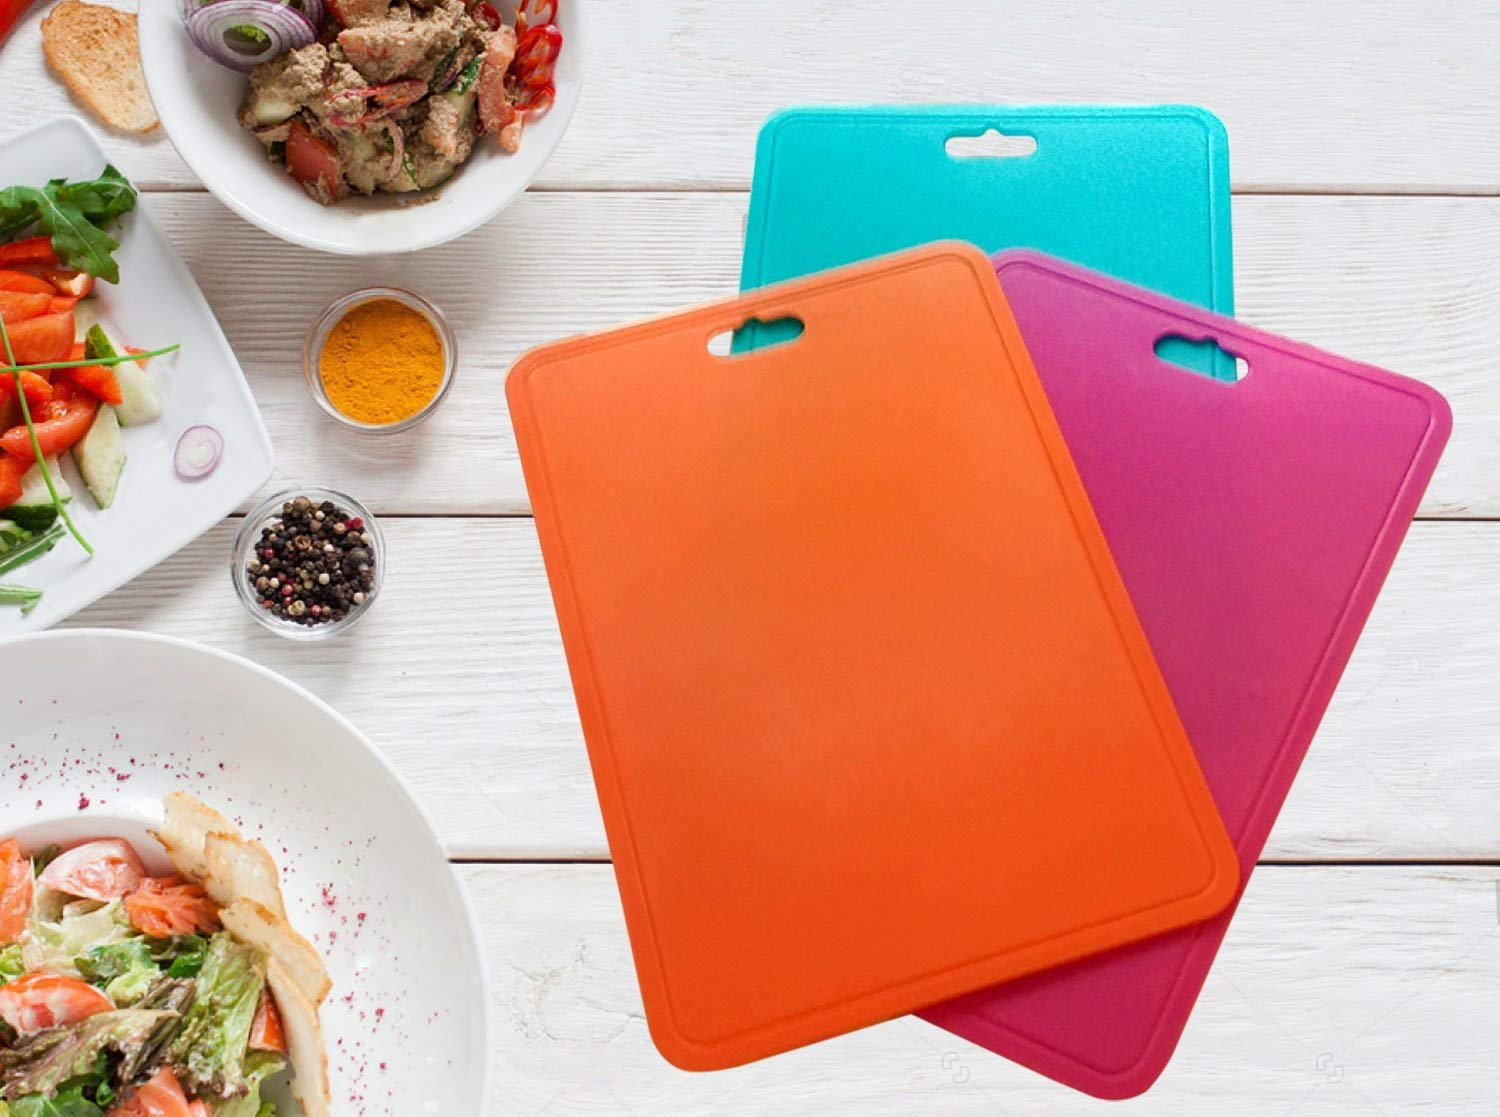 Pop Kitchen Products Presents Durable Plastic Colorful Cutting Boards Set Of 3. Heavy Duty Anti-Bacterial Board Perfect For Chopping, Cutting And All Food Prep For Professional Kitchens and Chefs